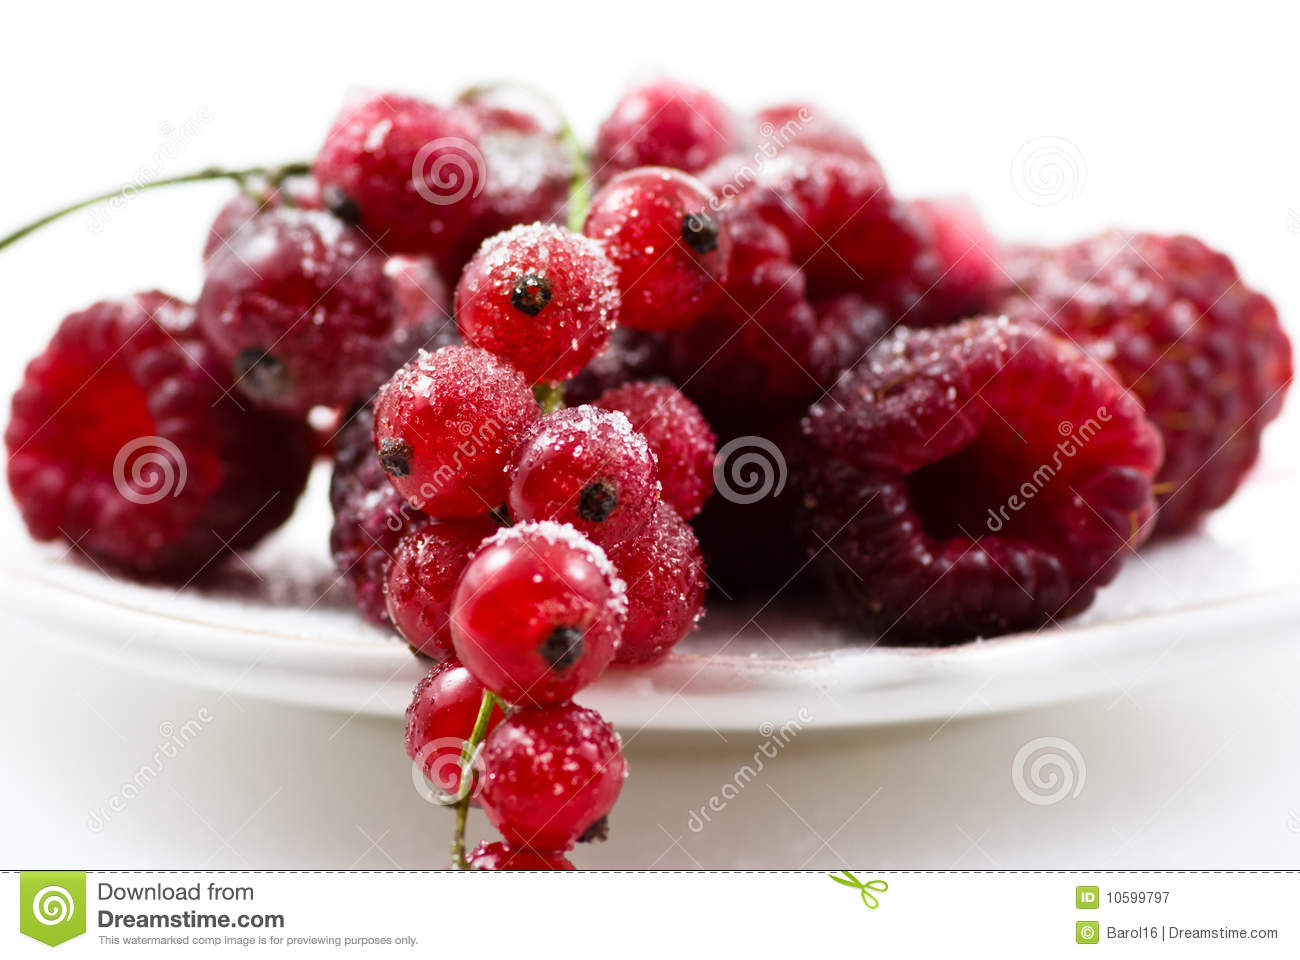 Red fruits with sugar